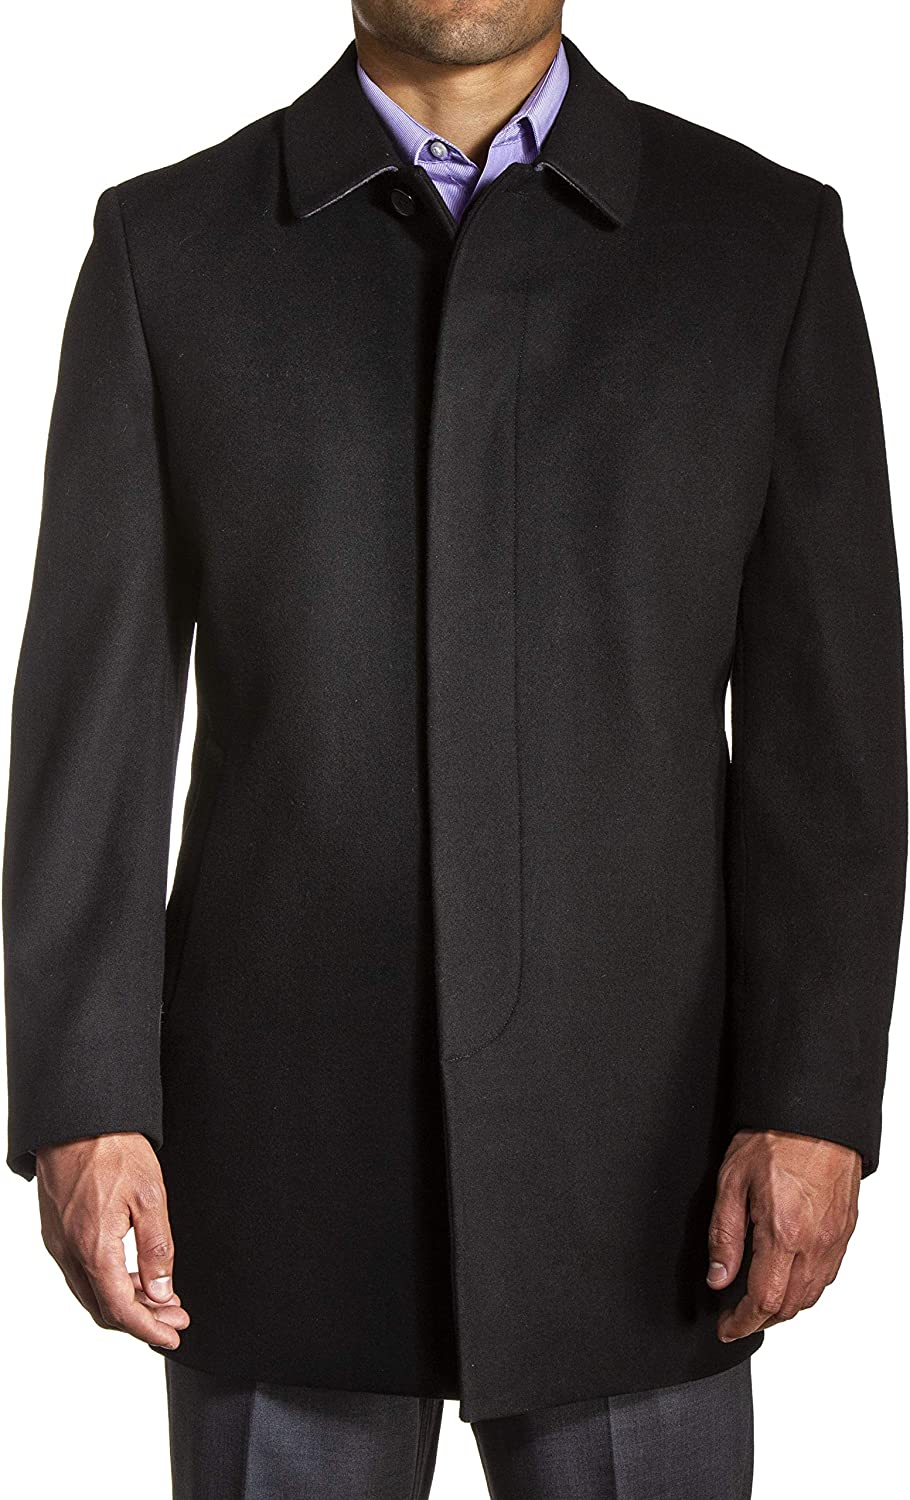 Mid-Thigh Tyson Tailored Topcoat in Black